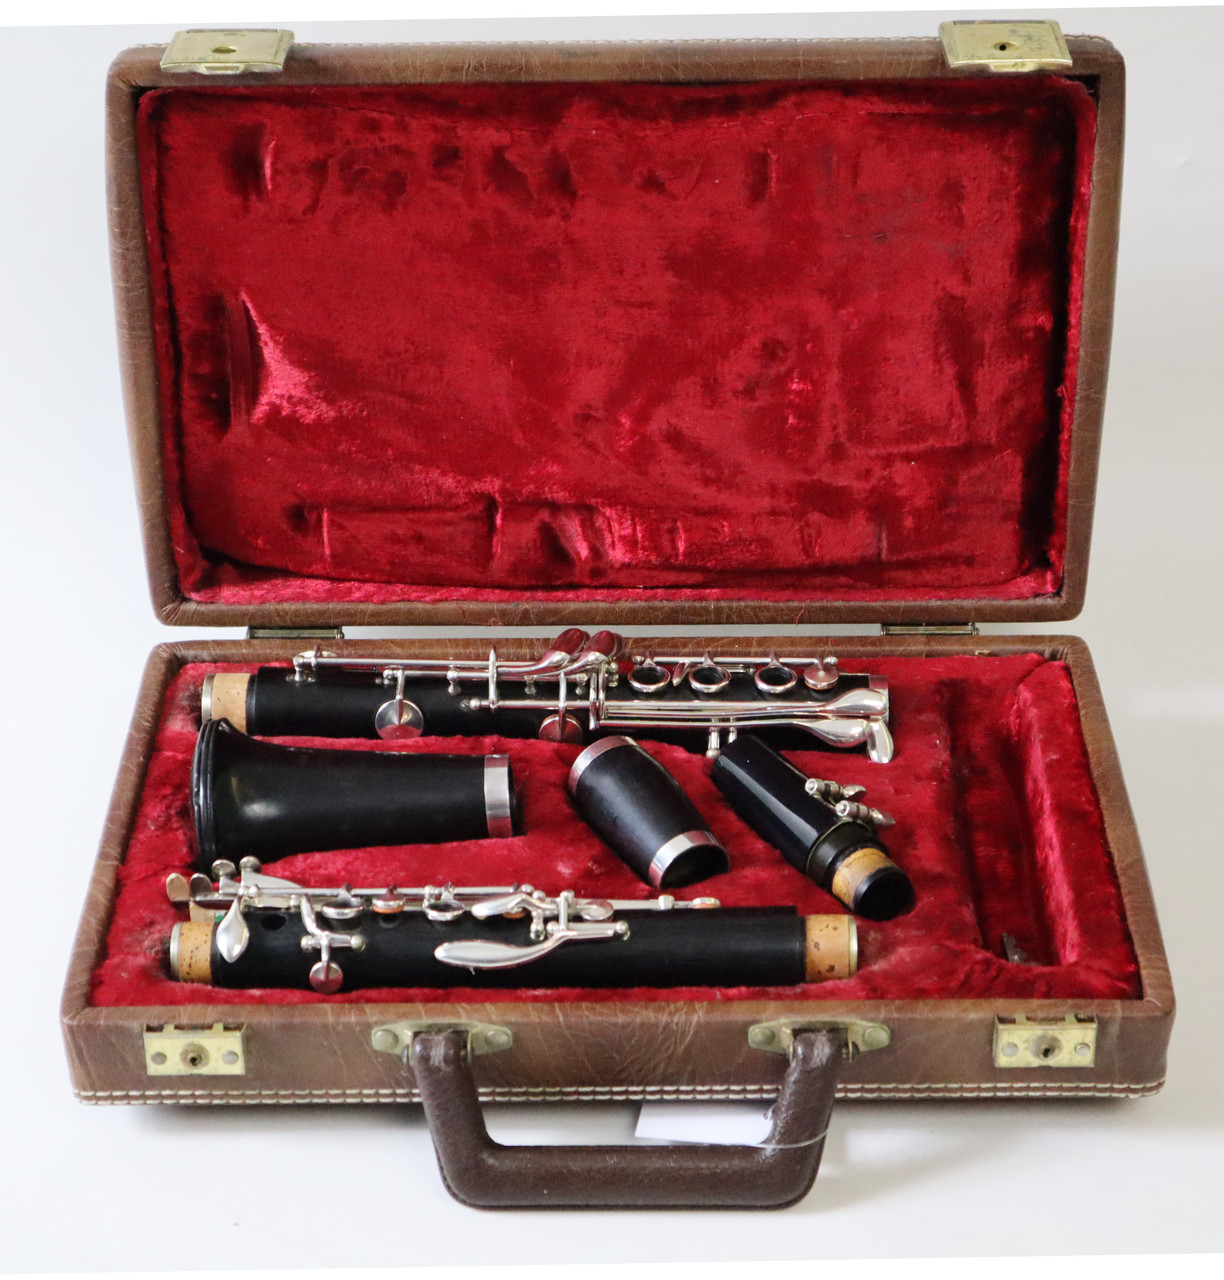 BOOSEY AND HAWKES IMPERIAL 926 Bb CLARINET - REFURBISHED